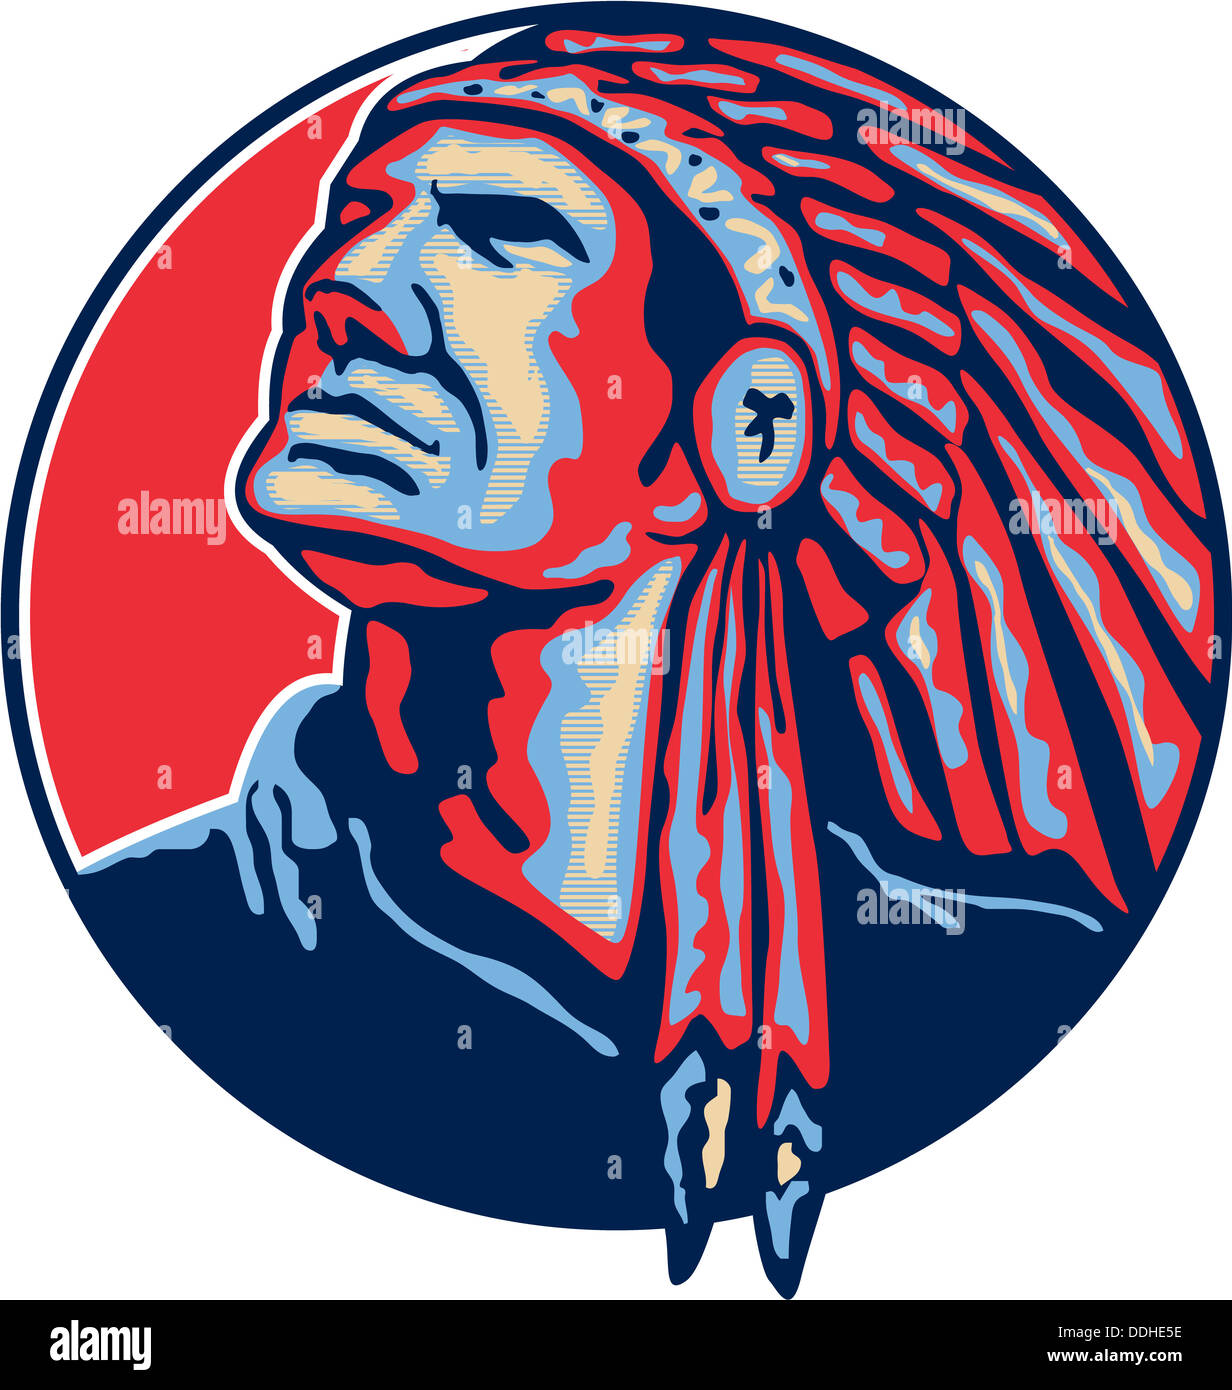 Illustration of a native american indian chief looking up with headdress set inside circle on isolated white background. - Stock Image